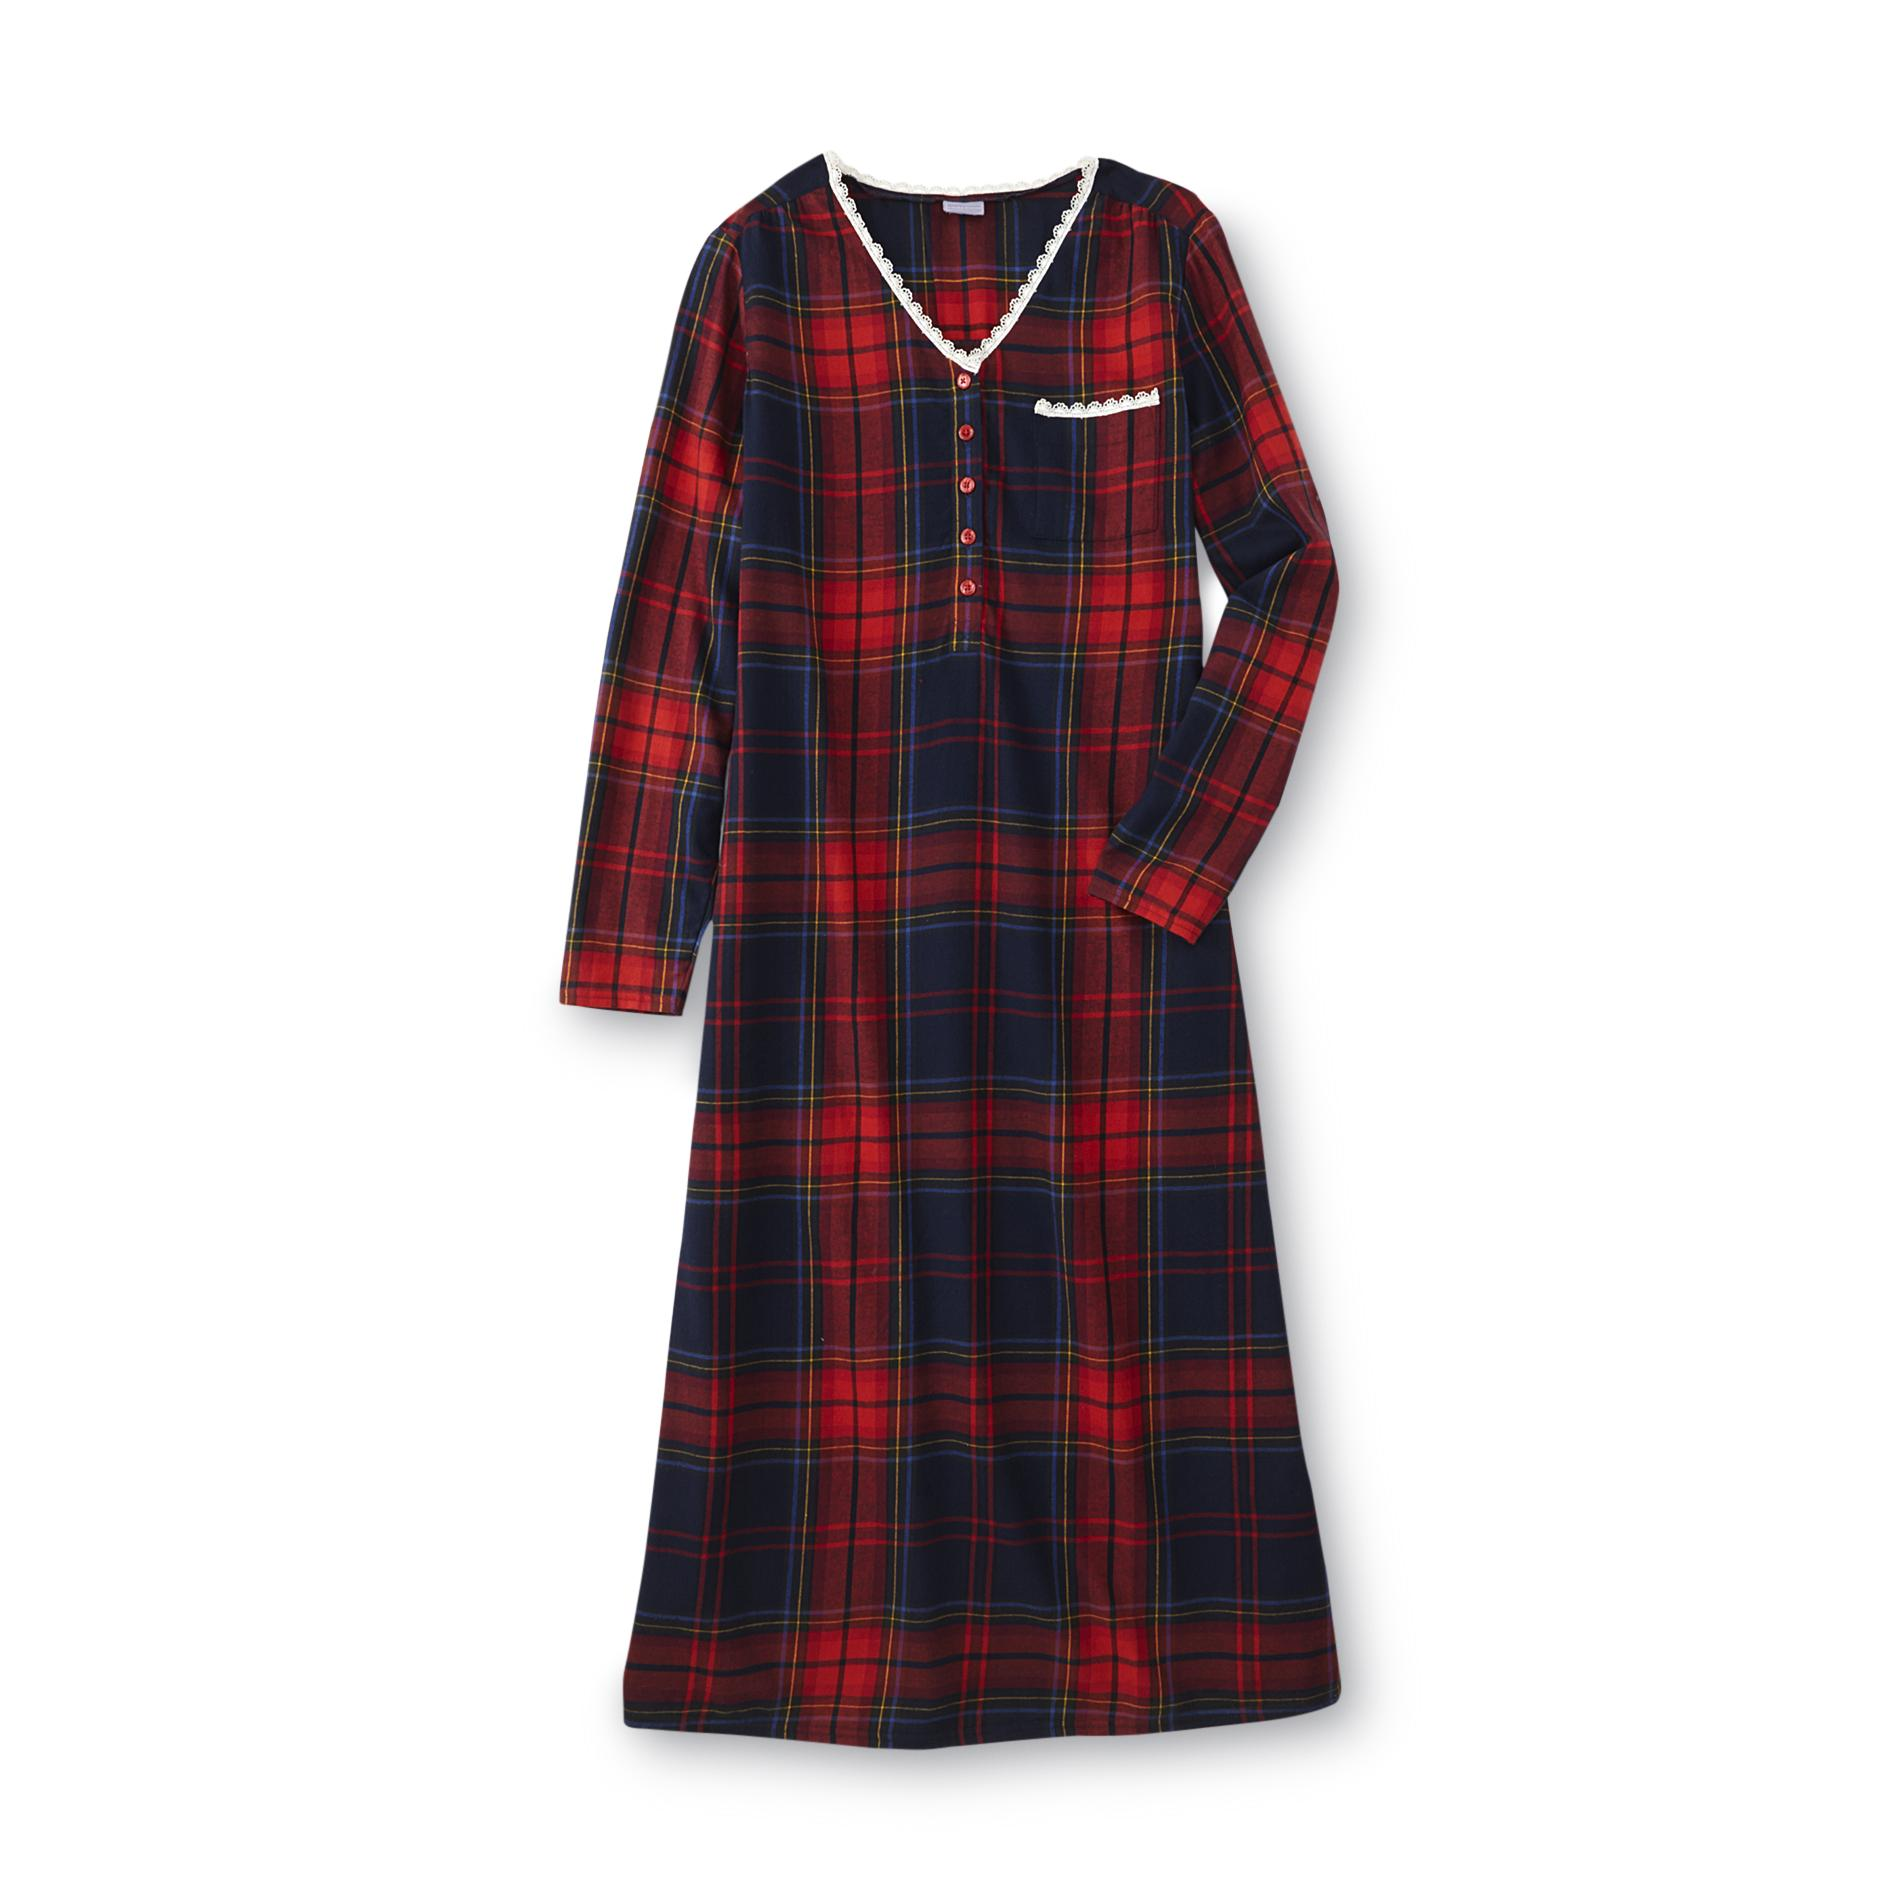 High Quality Soft Warm Women's Flannel Night Gowns in prints, plaids, polka dots and solid colors. Sizing from Small to 2XL. Women's Nightshirts and Gowns. Sort by Shop By Gender. Shop By Color Noble Mount Womens Premium % Cotton Flannel Long Sleeve Sleep Shirt - Dots Diva Red. $ Noble Mount. Women's Premium Flannel Long Gown.